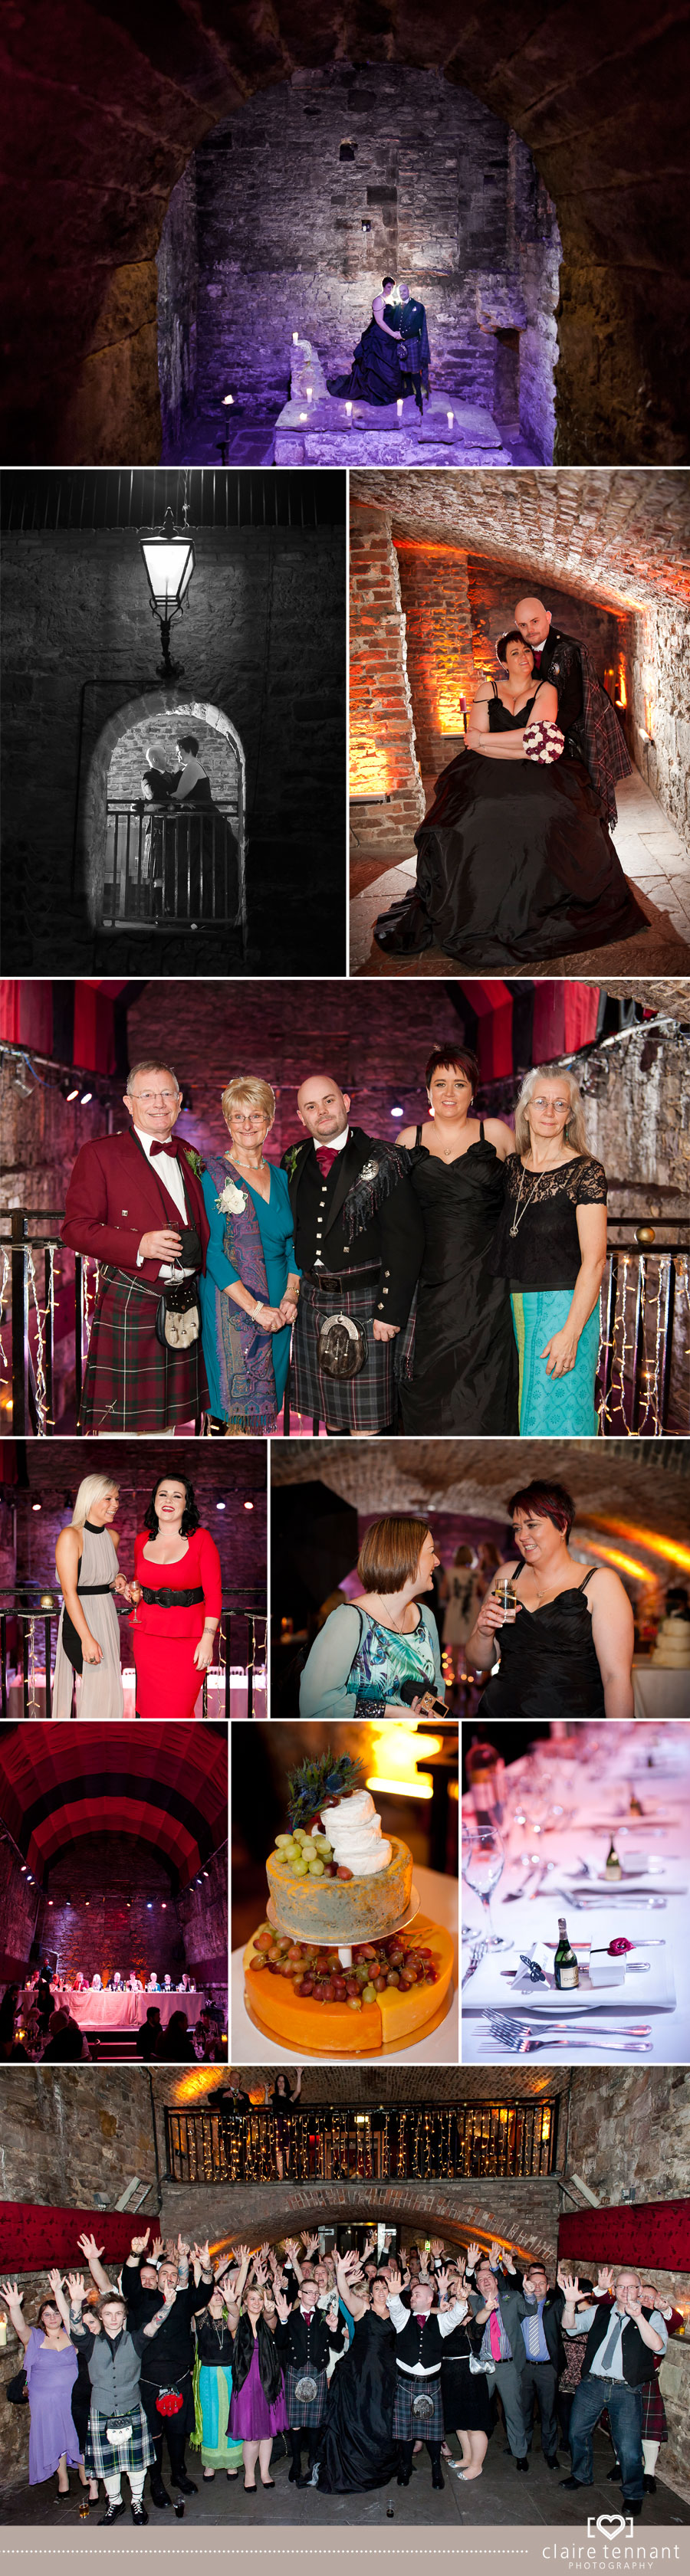 Wedding Photography at The Caves in Edinburgh